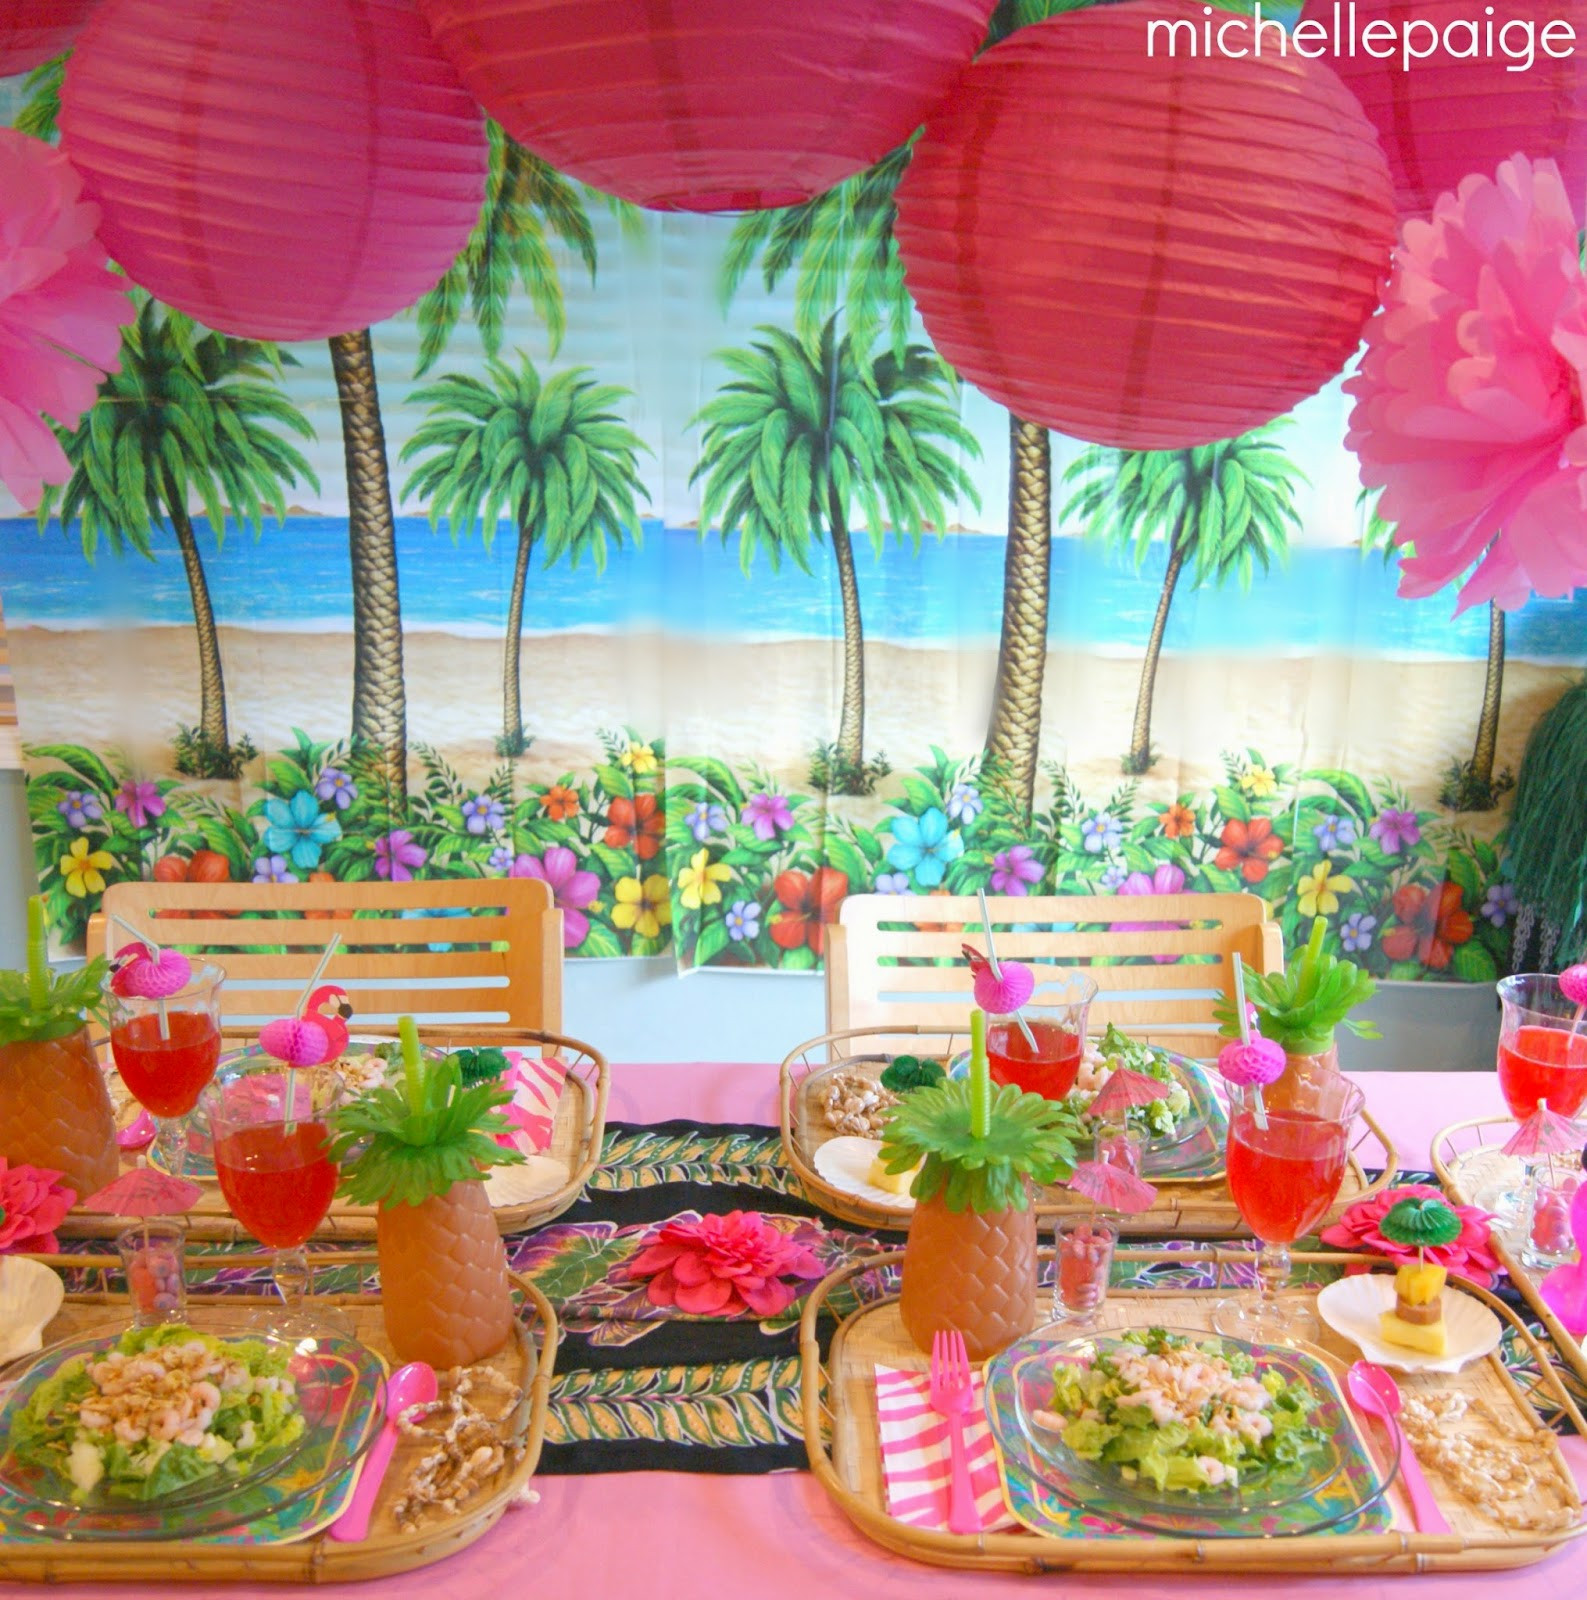 Best ideas about Hawaiian Themed Birthday Party . Save or Pin michelle paige blogs Hawaiian Birthday Party Now.